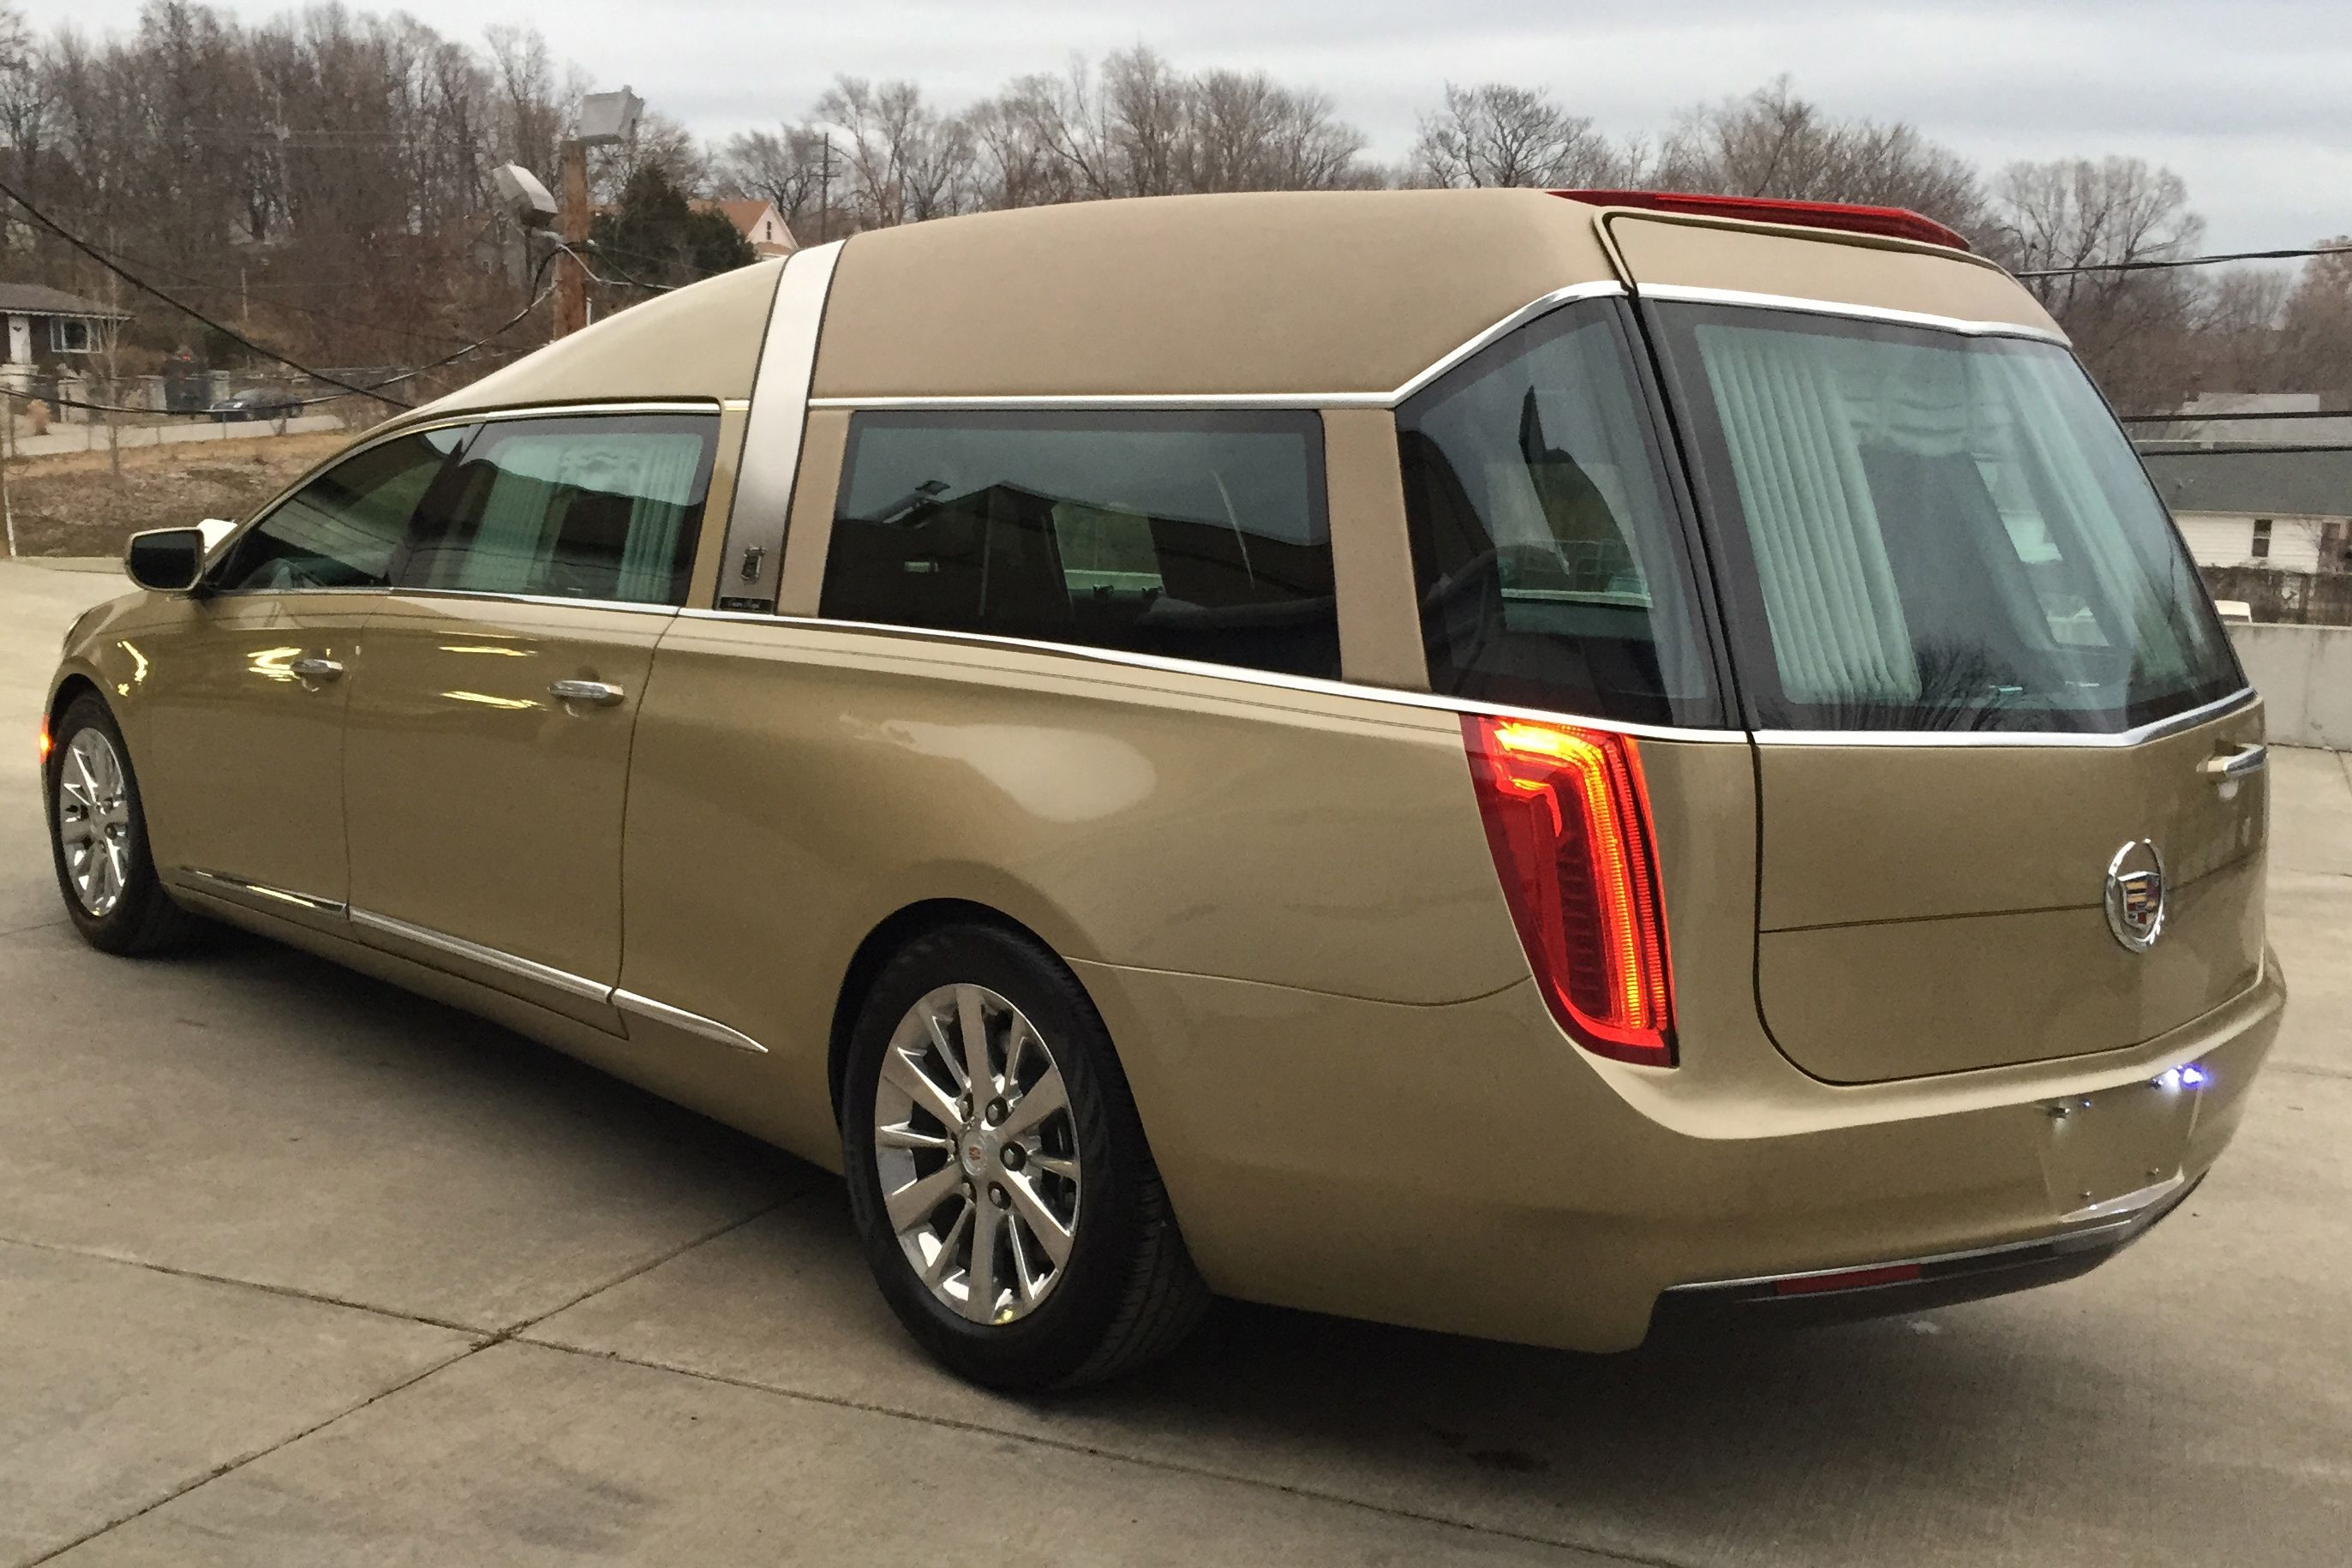 272 best Funeral Cars images on Pinterest